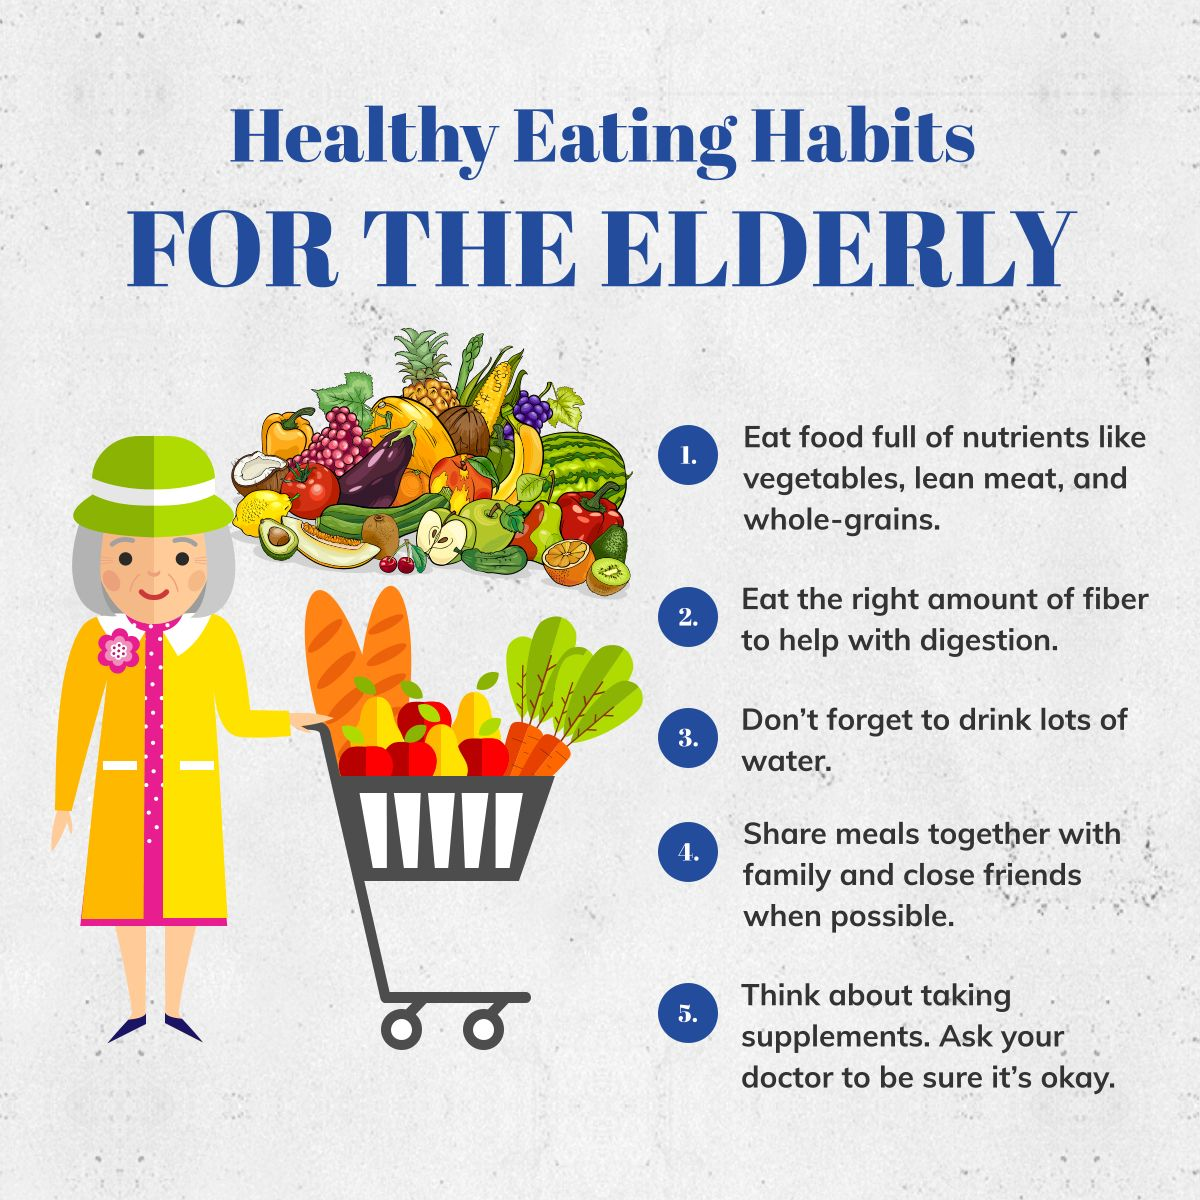 Home Healthy eating habits, Home health care, Health